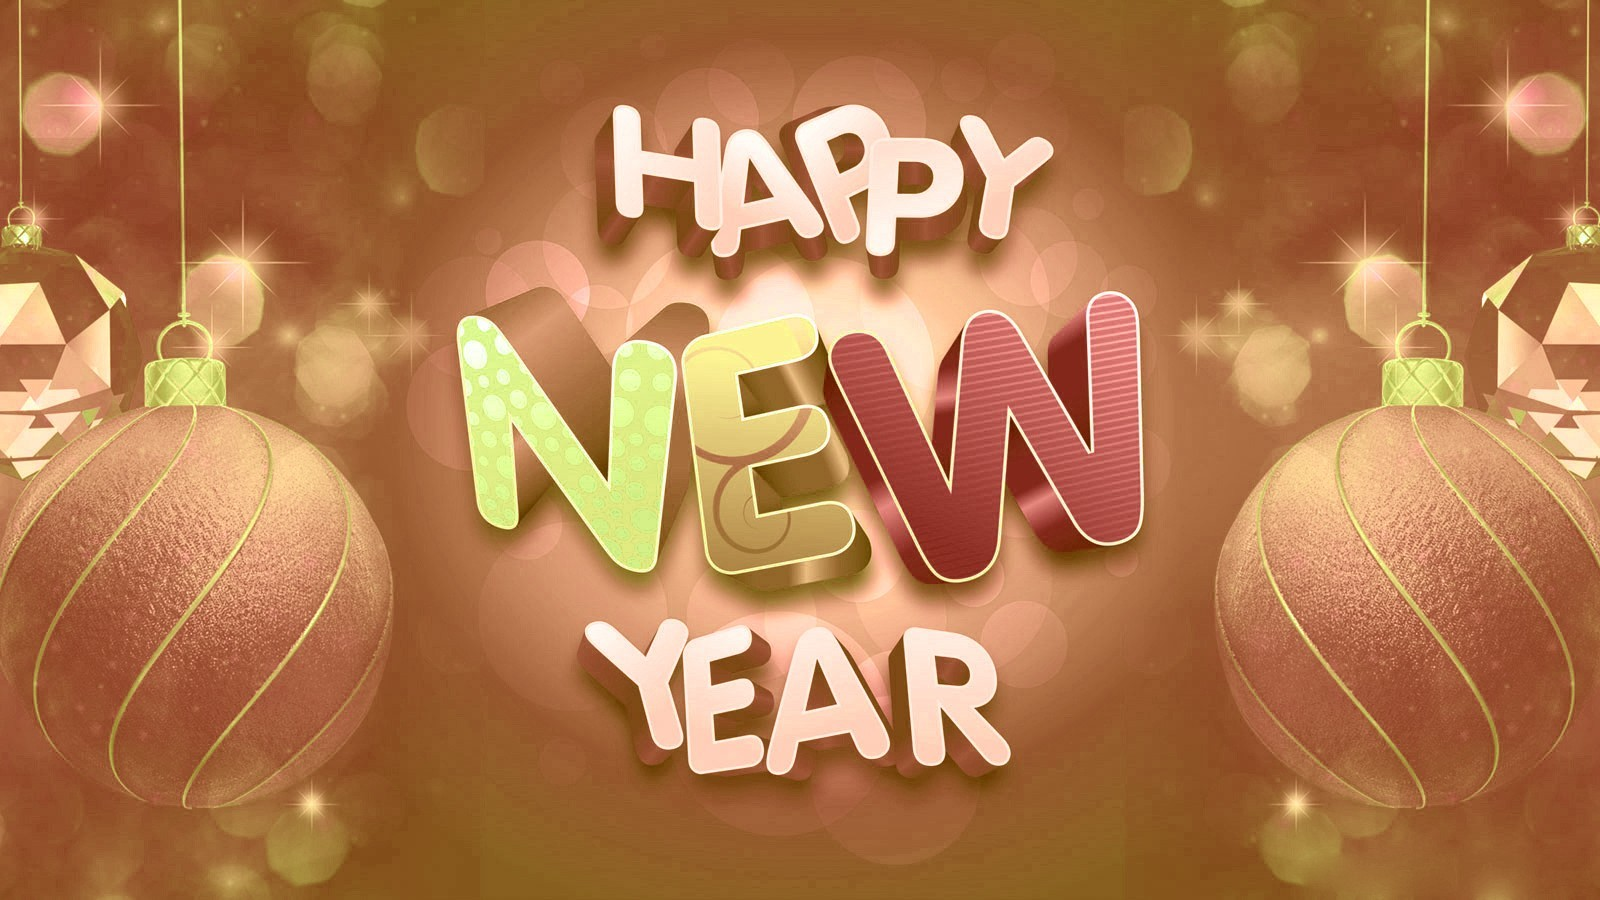 happy new year wishes messages for friends family